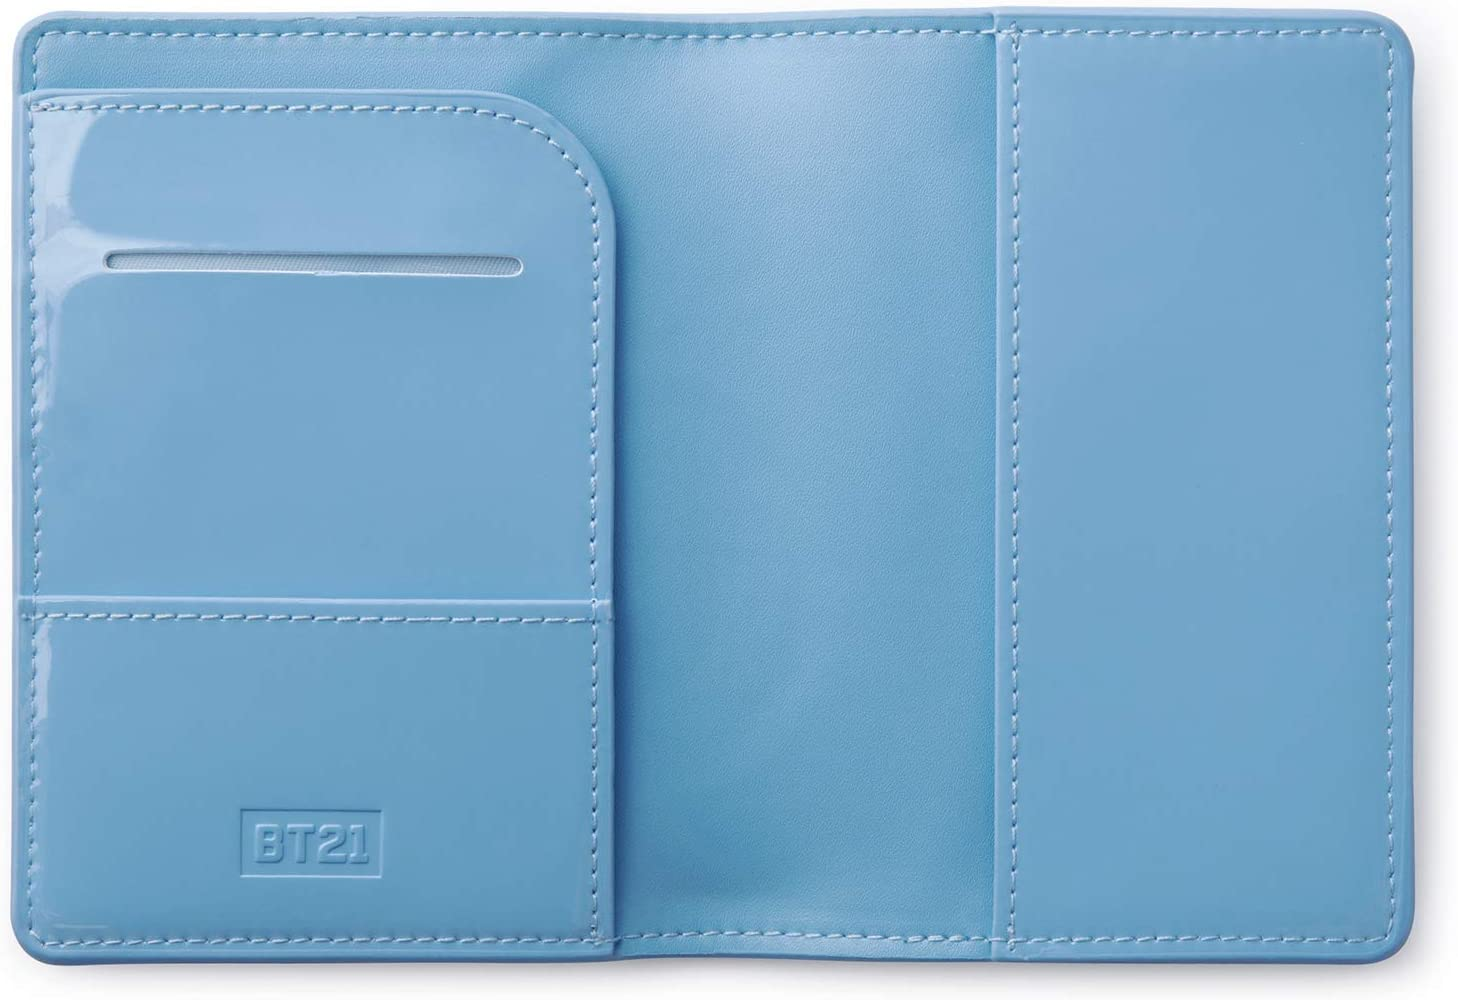 BT21 Official Merchandise by Line Friends KOYA Character Enamel Passport Holder Cover